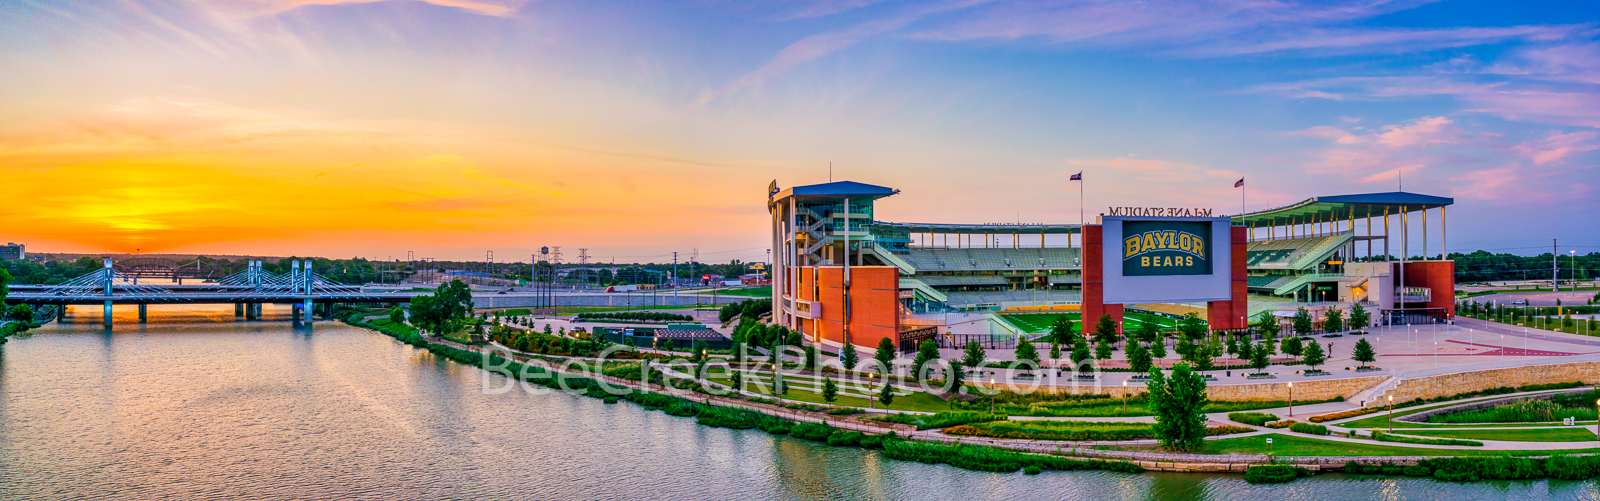 Waco, sunset, aerial, Baylor, McLane Stadium, Baylor University, dusk, blue hour, Baylor Bears, stadium , University of Baylor, school, Brazos river, panorama, pano, drone, campus, stay bridge, colore, photo